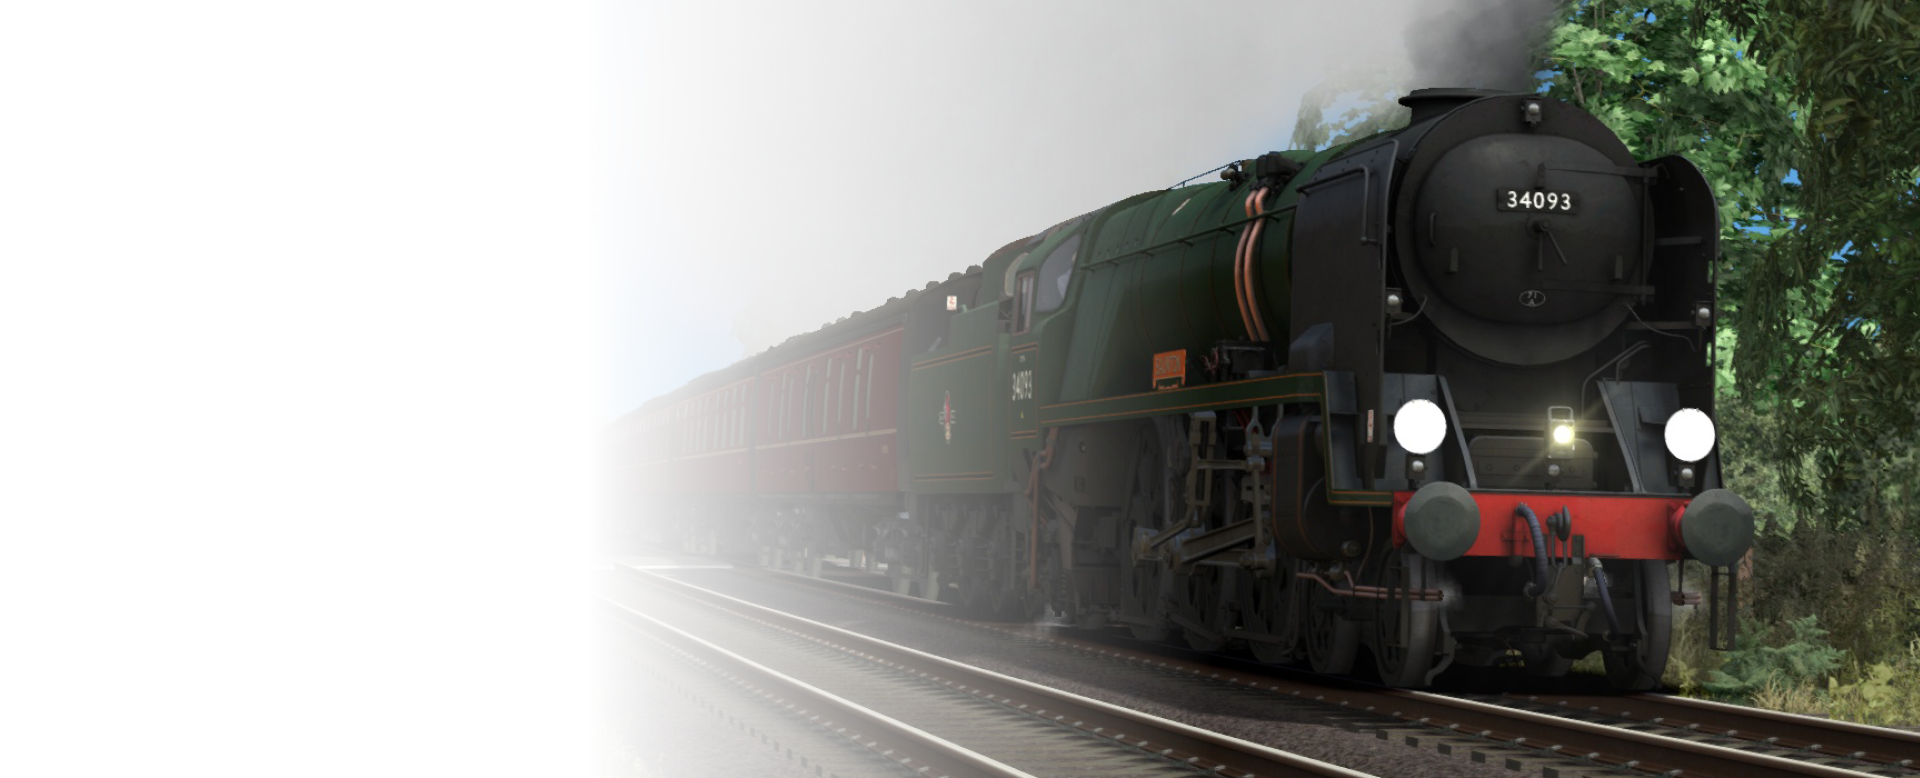 BR Rebuilt West Country & Battle of Britain Class